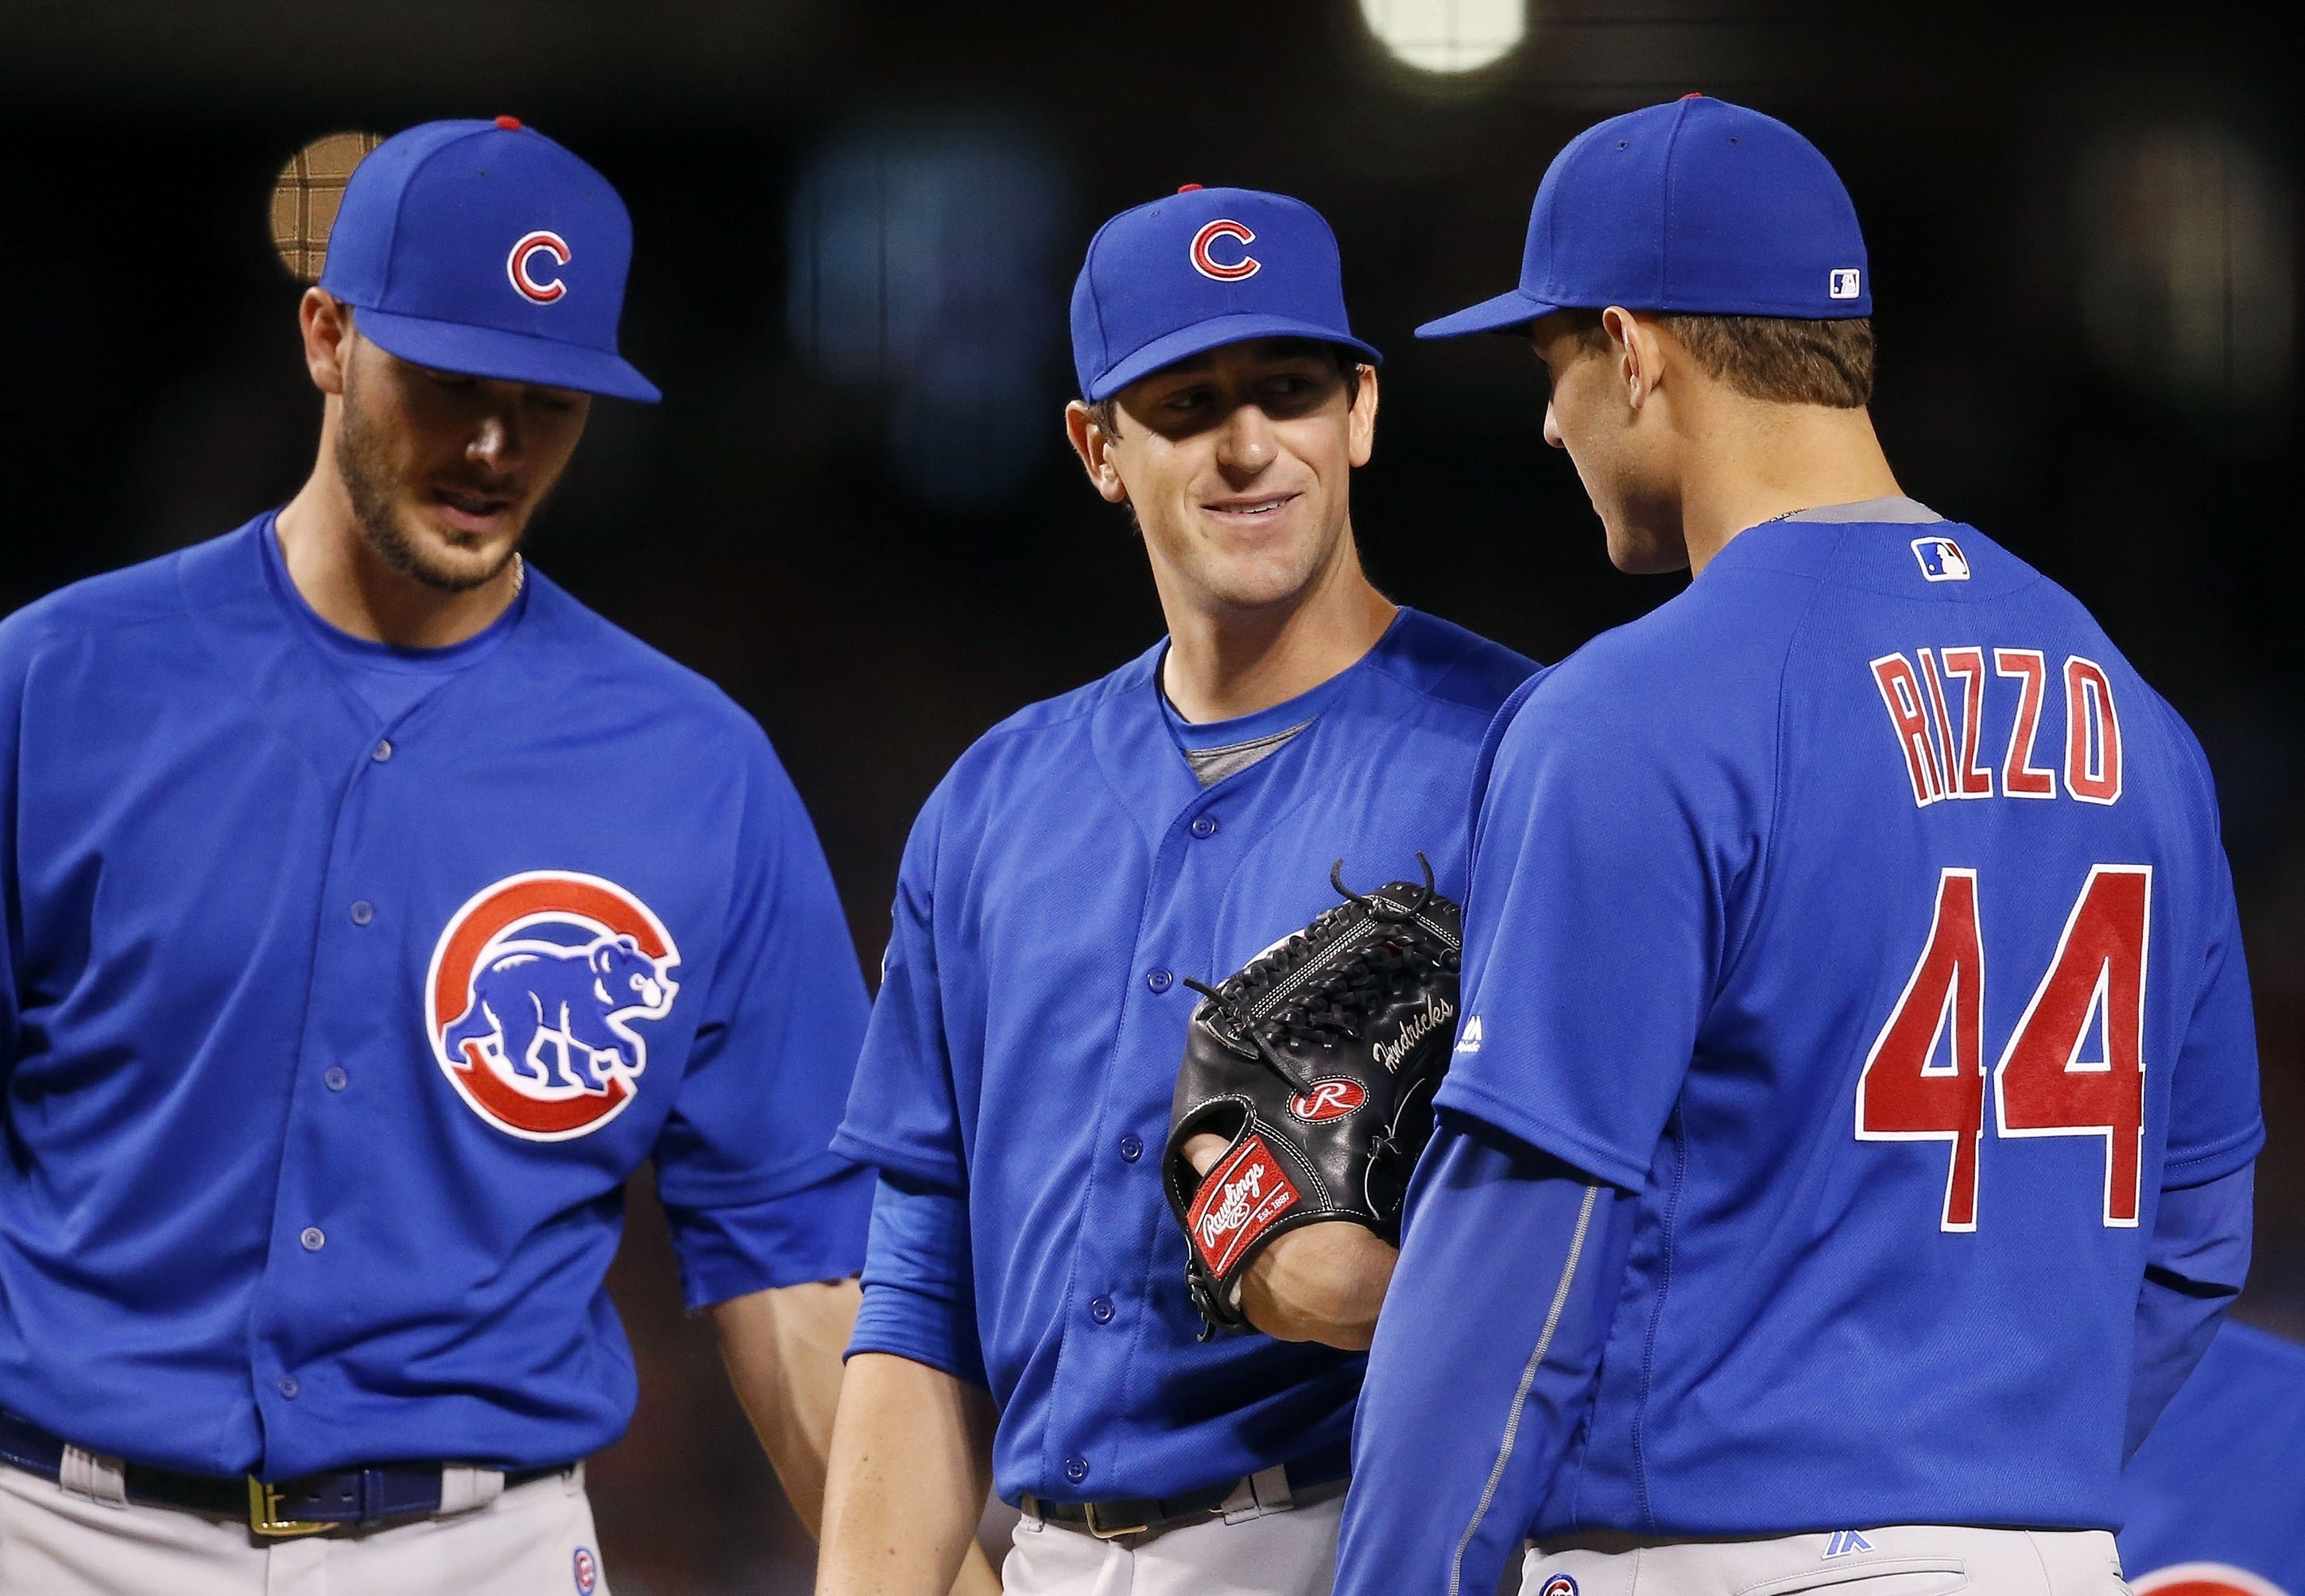 Some of these guys might be leaving the Cubs pretty soon.